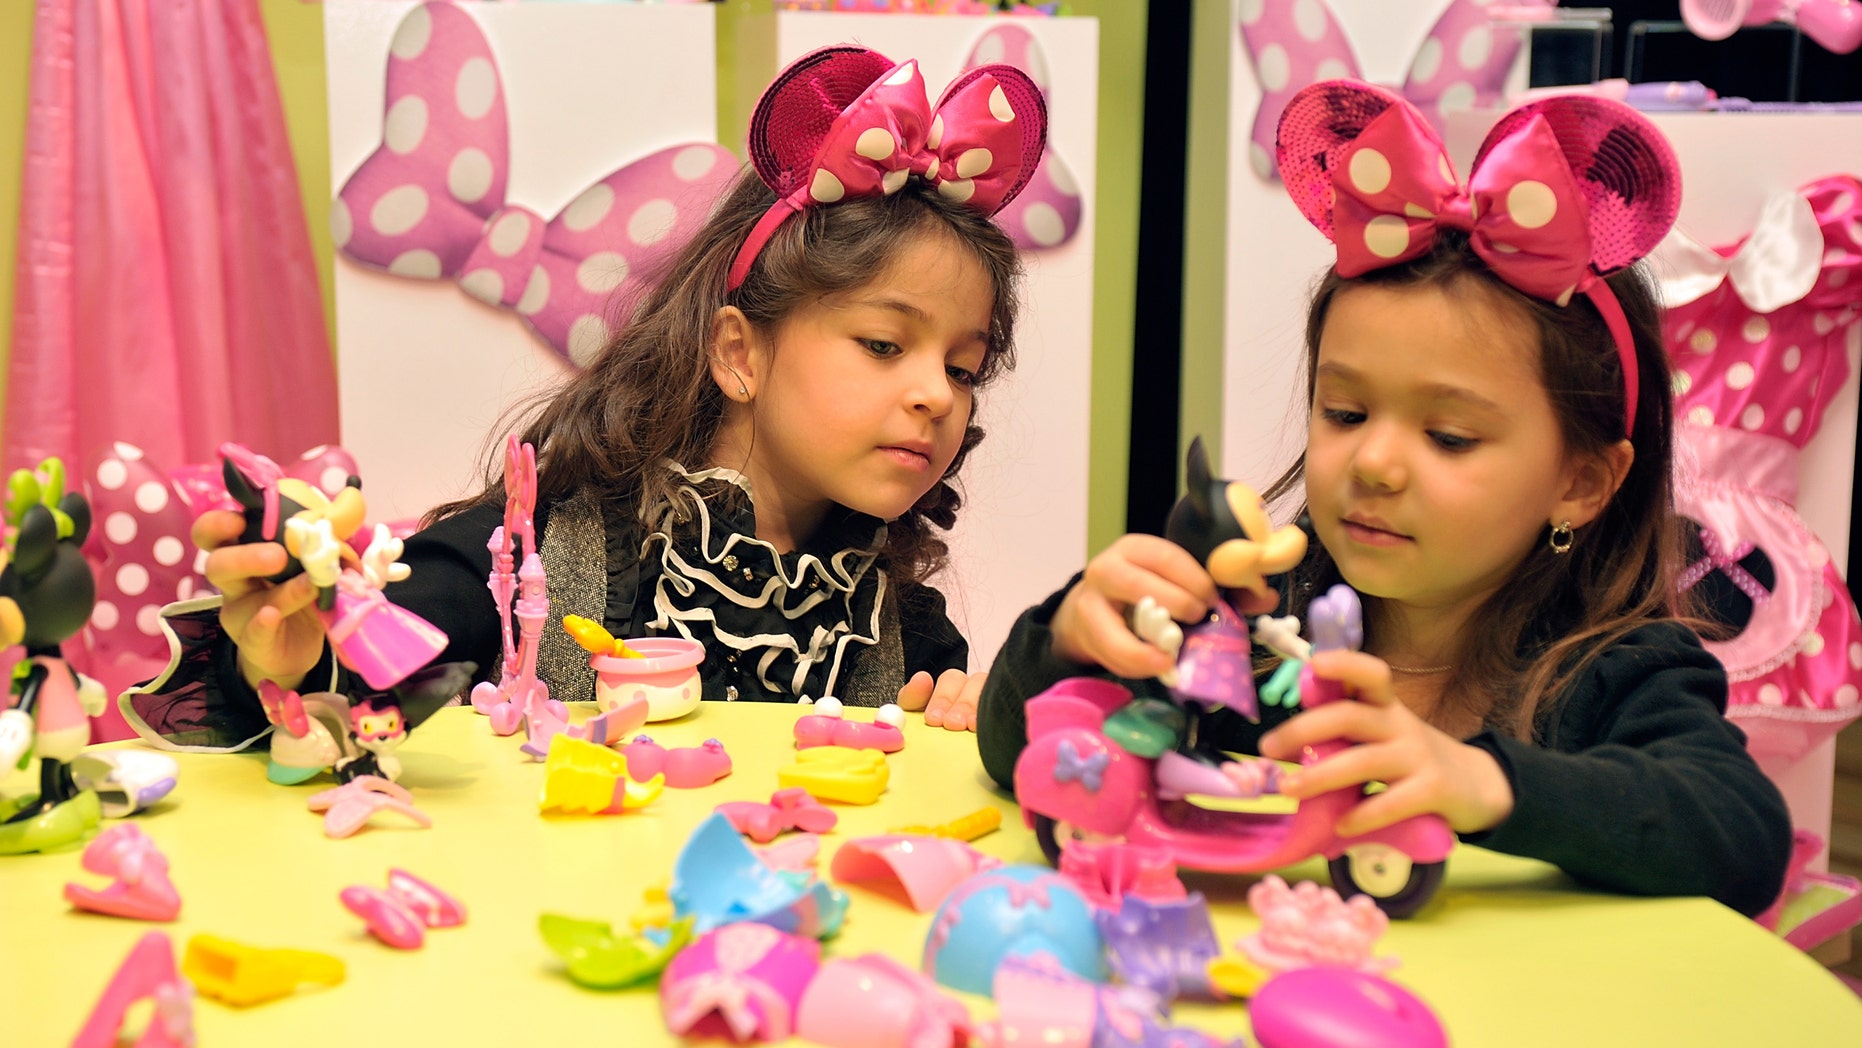 NEW YORK, NY - FEBRUARY 13:  A view of children in a play area that was set up during the Disney Junior toy line unveiling with Osbourne and Arquette at Altman Building on February 13, 2012 in New York City.  (Photo by Joe Corrigan/Getty Images for Disney)